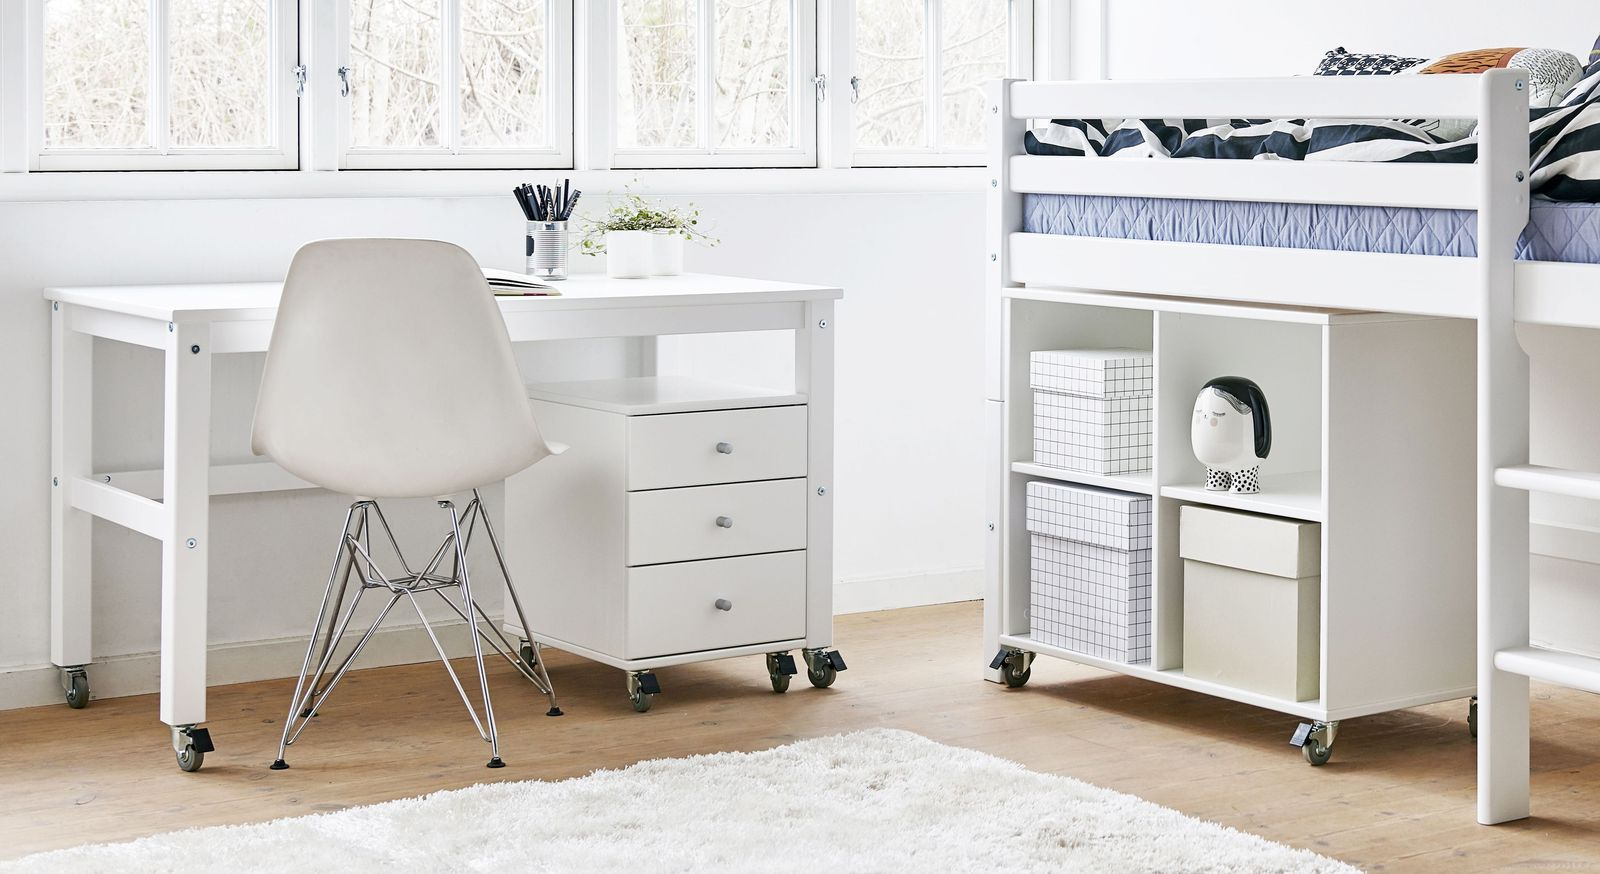 wei lackierter rollcontainer mit drei schubladen kids heaven. Black Bedroom Furniture Sets. Home Design Ideas